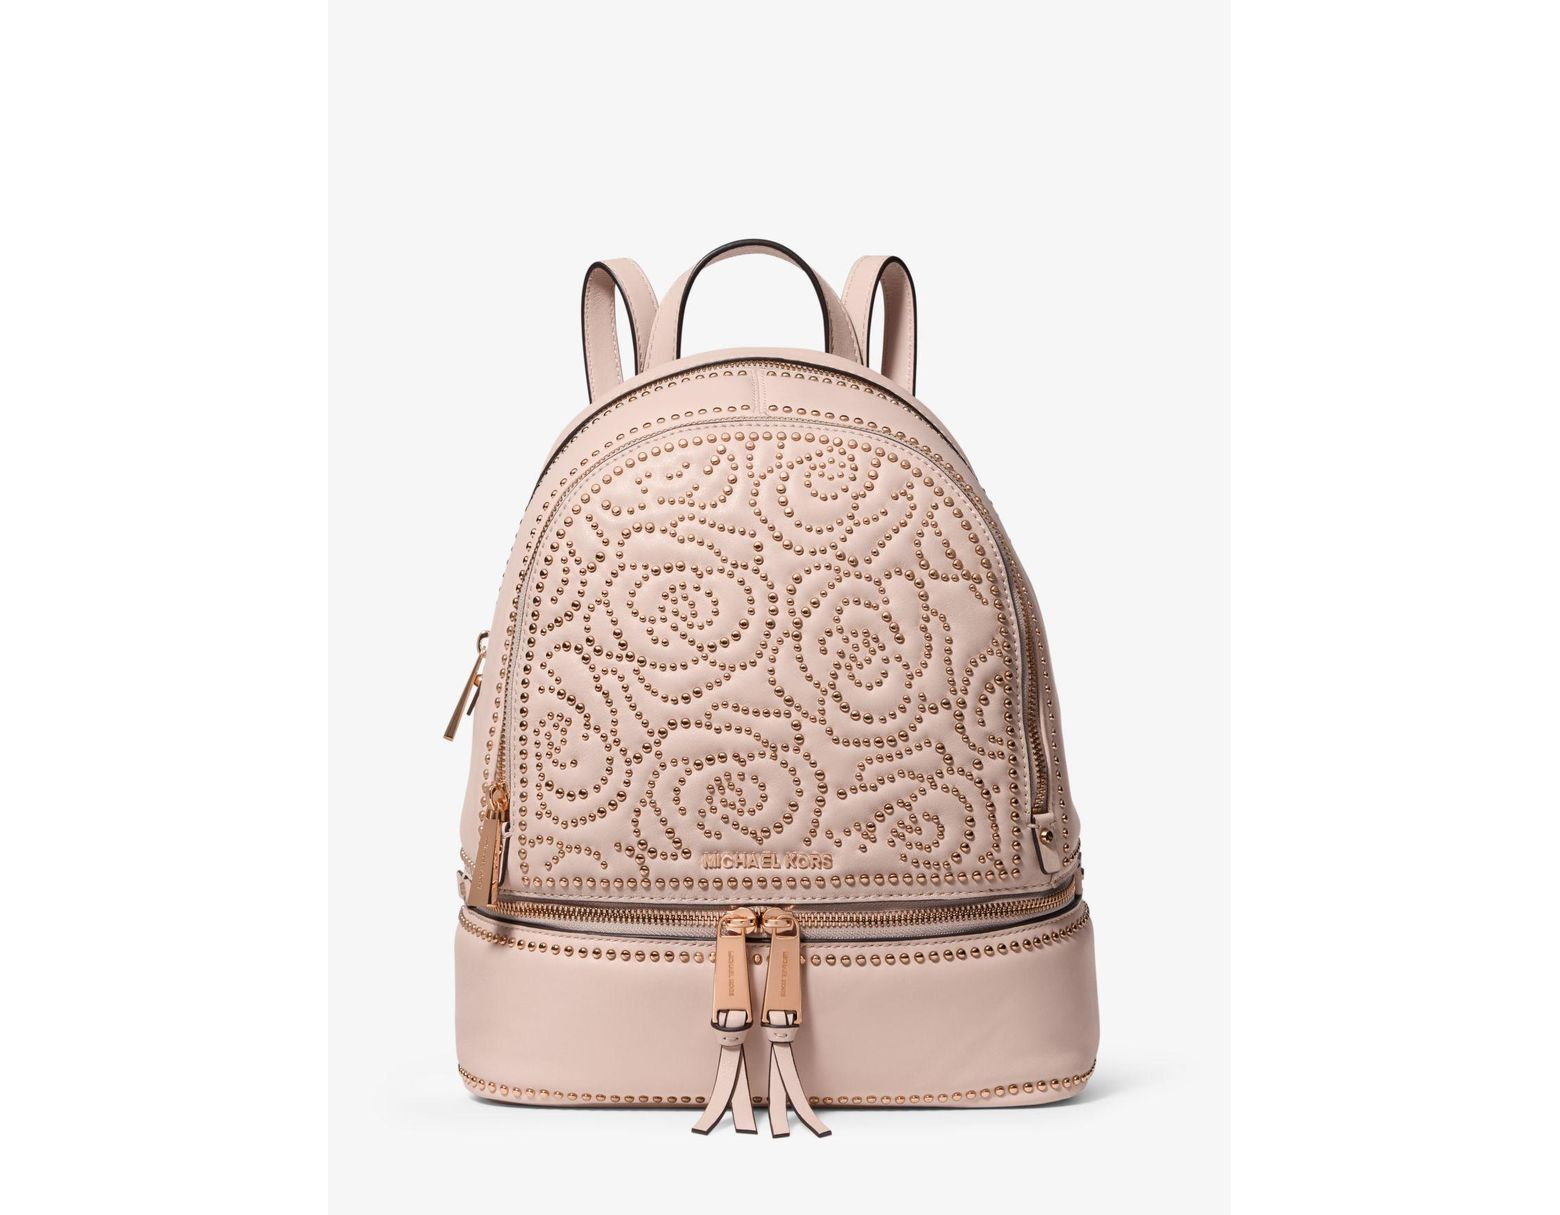 0abf835e058d Michael Kors Rhea Medium Rose Studded Leather Backpack in Pink - Save 57% -  Lyst